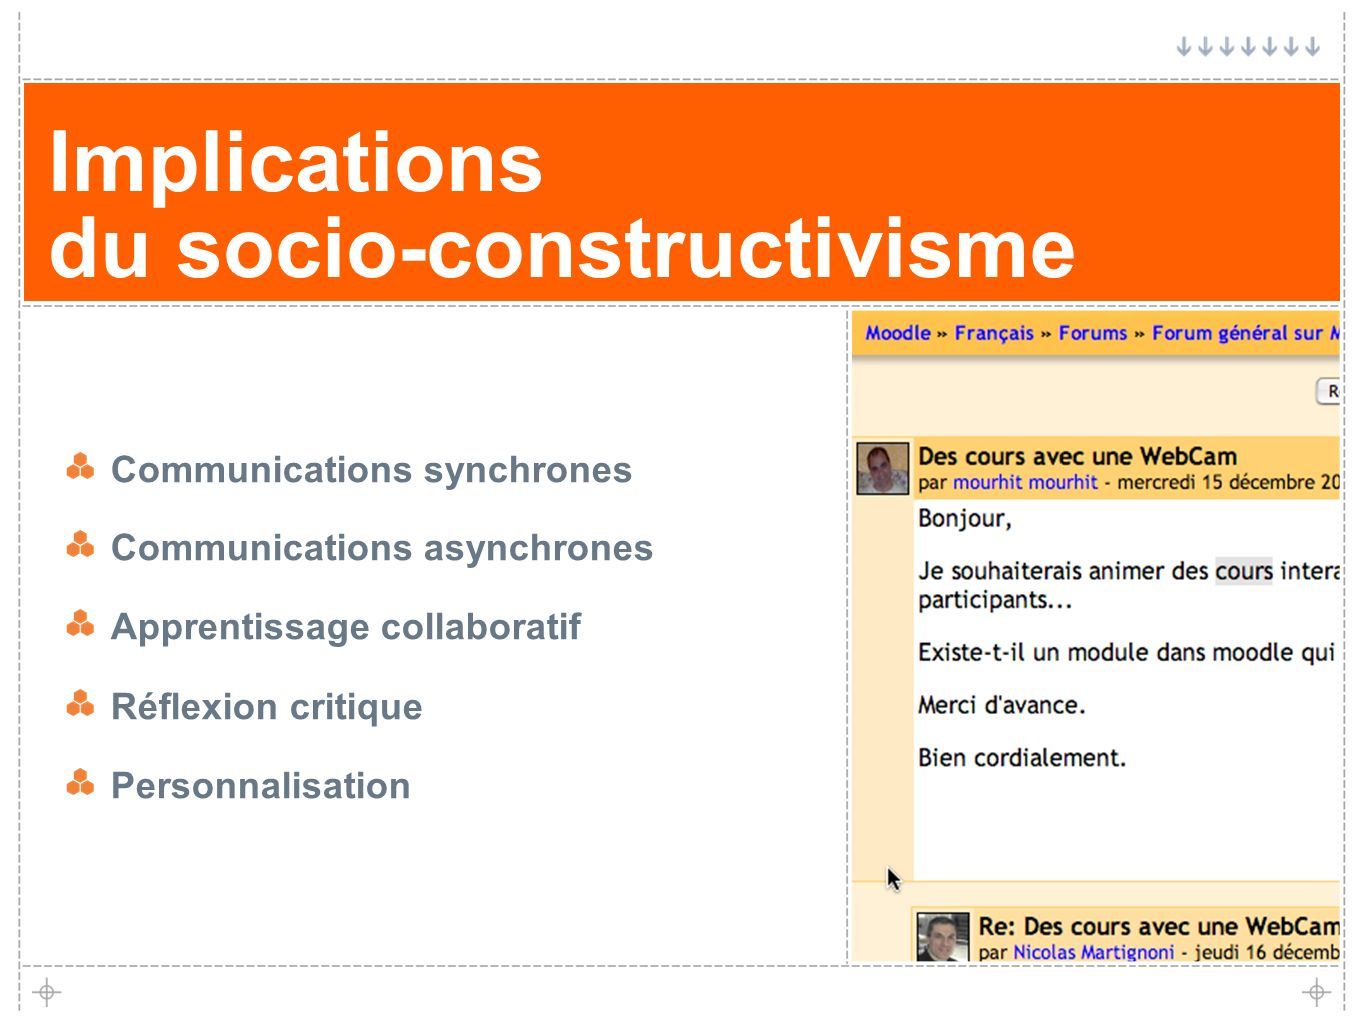 Implications du socio-constructivisme